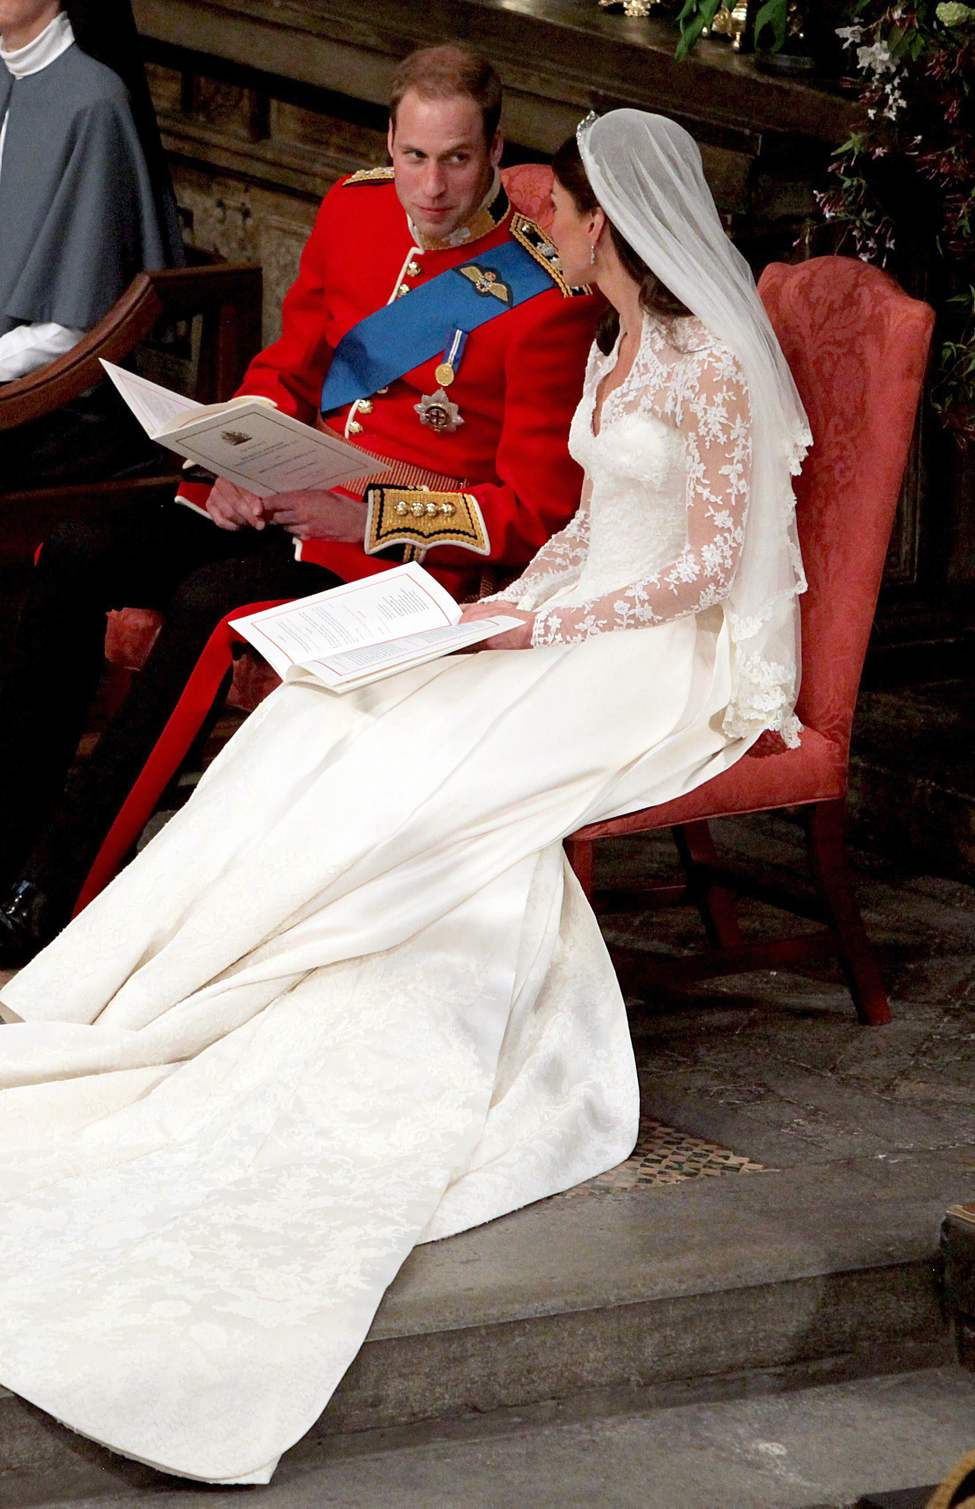 Britain's Prince William and Kate Middleton at Westminster Abbey, London, during their wedding service, Friday April 29, 2011. (AP Photo/Anthony Devlin, Pool)